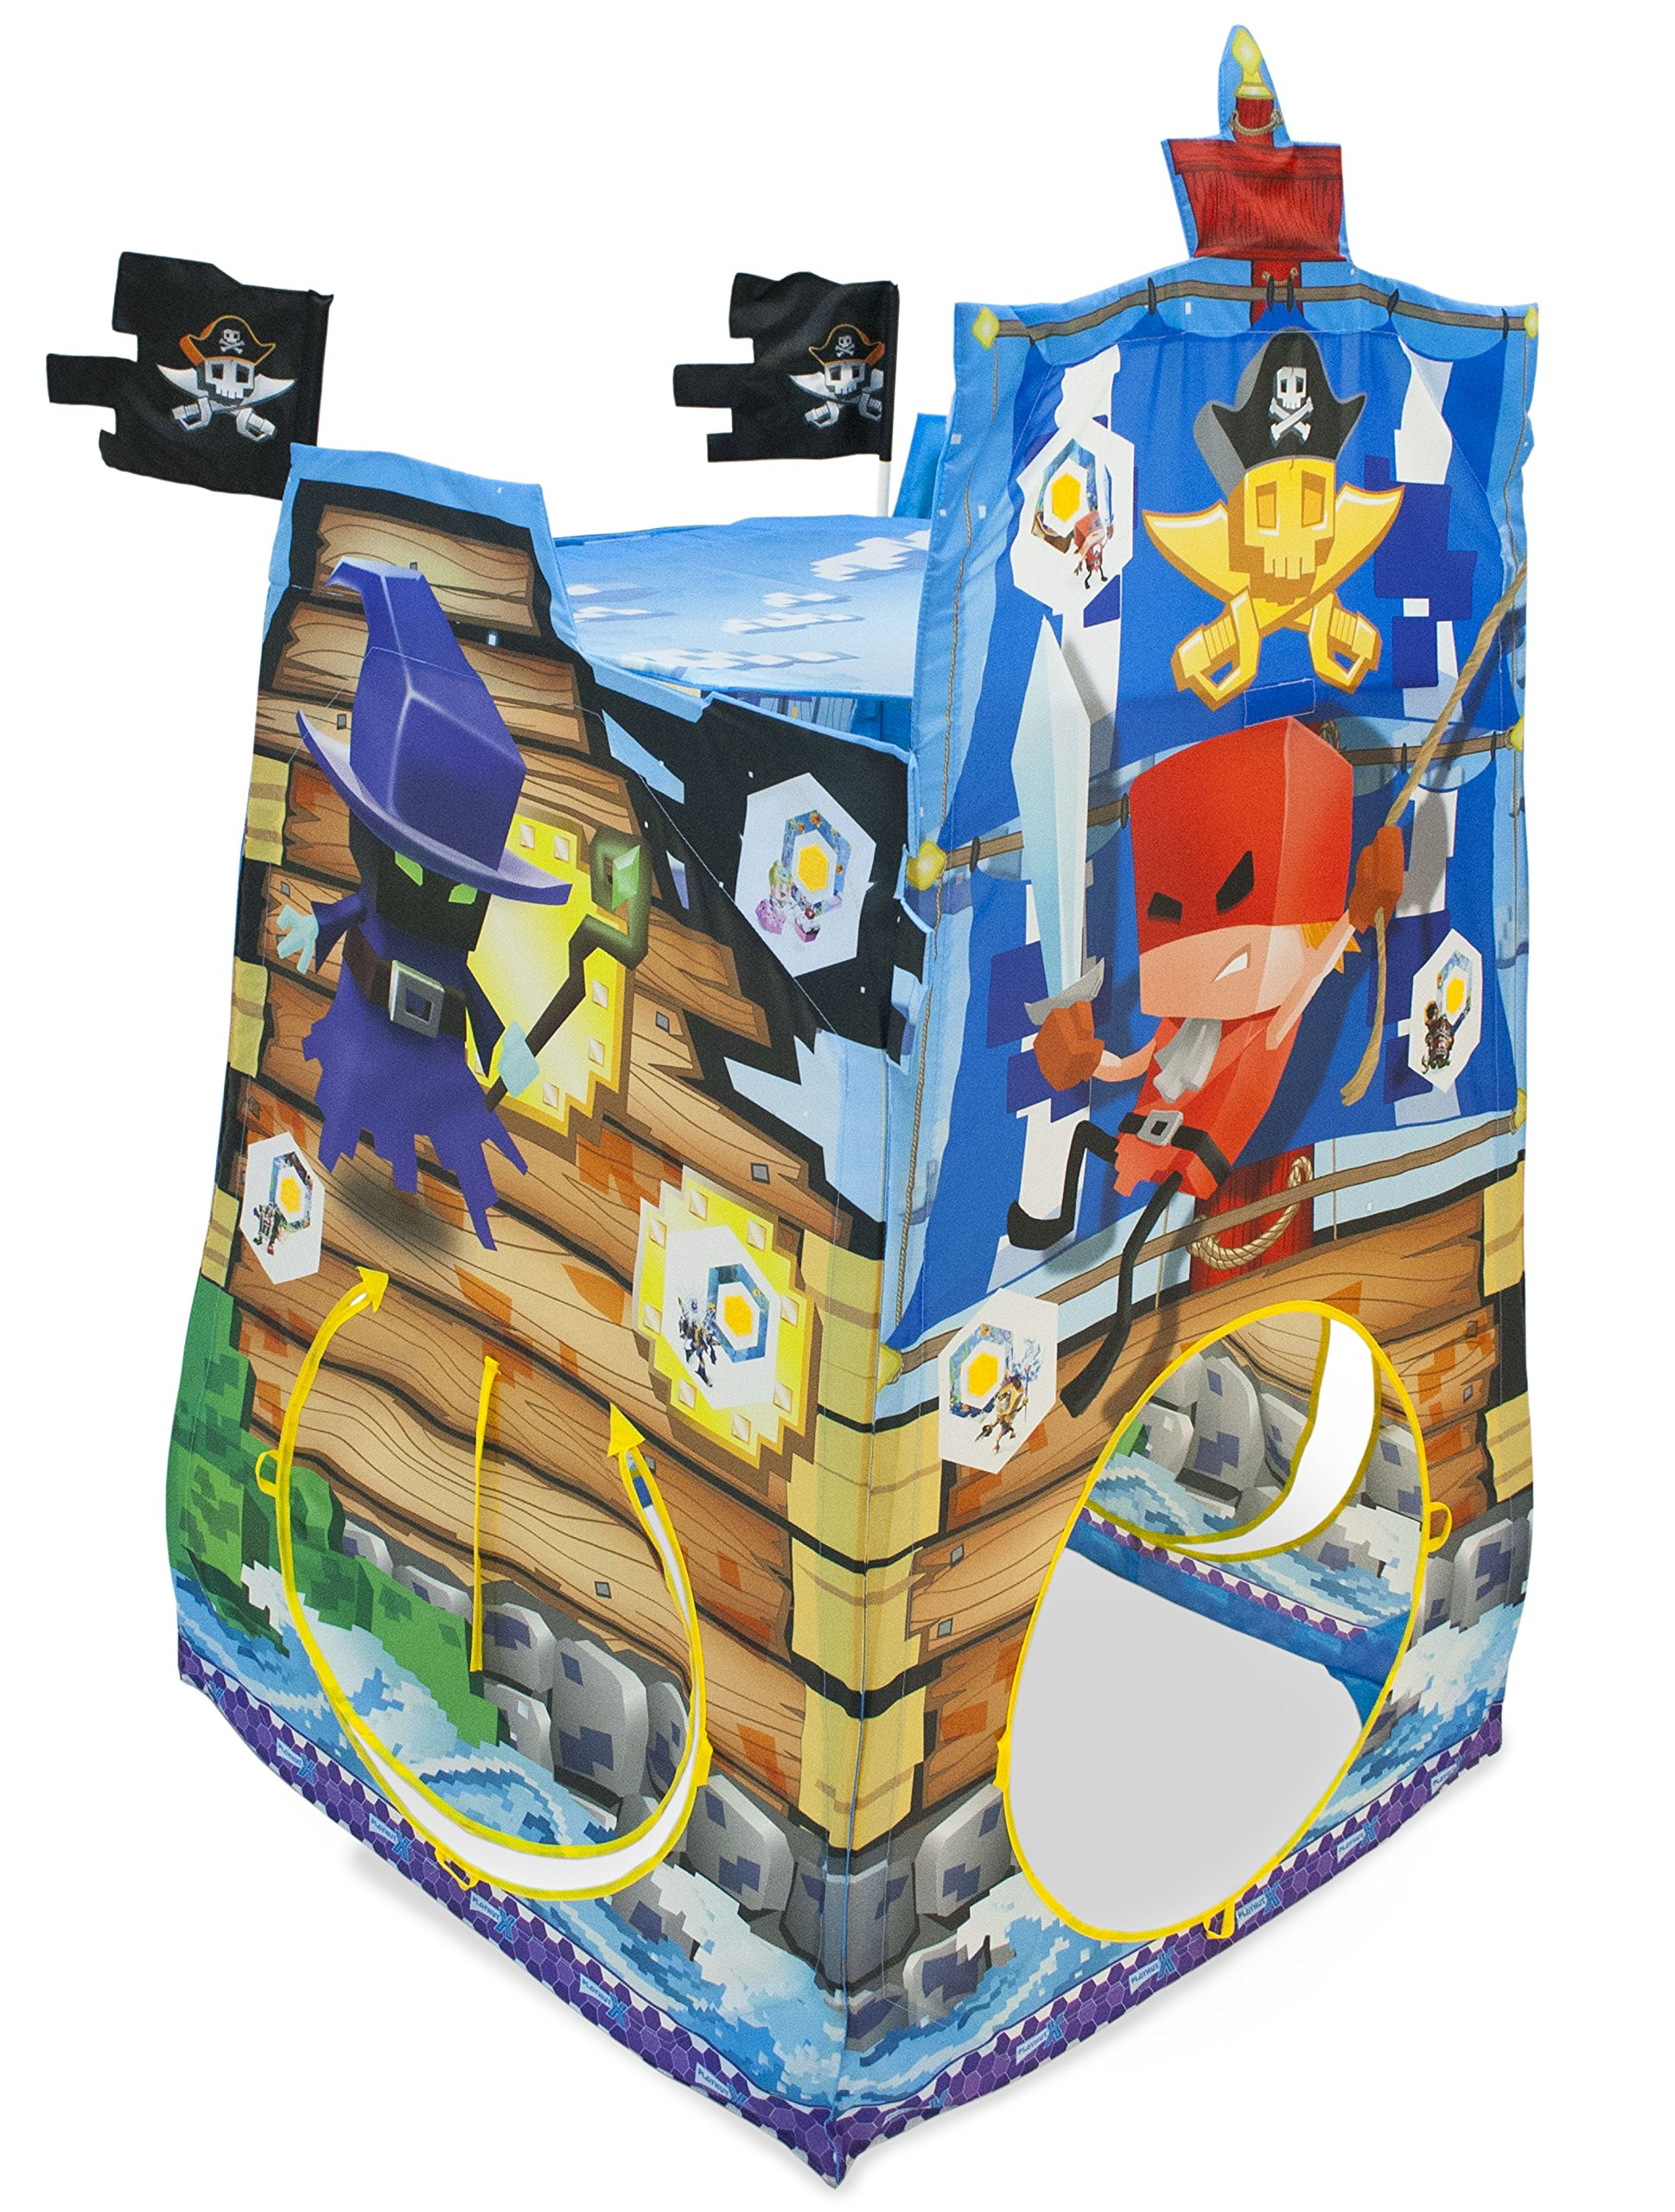 Playhut X Island Rush Play Tent with App Game